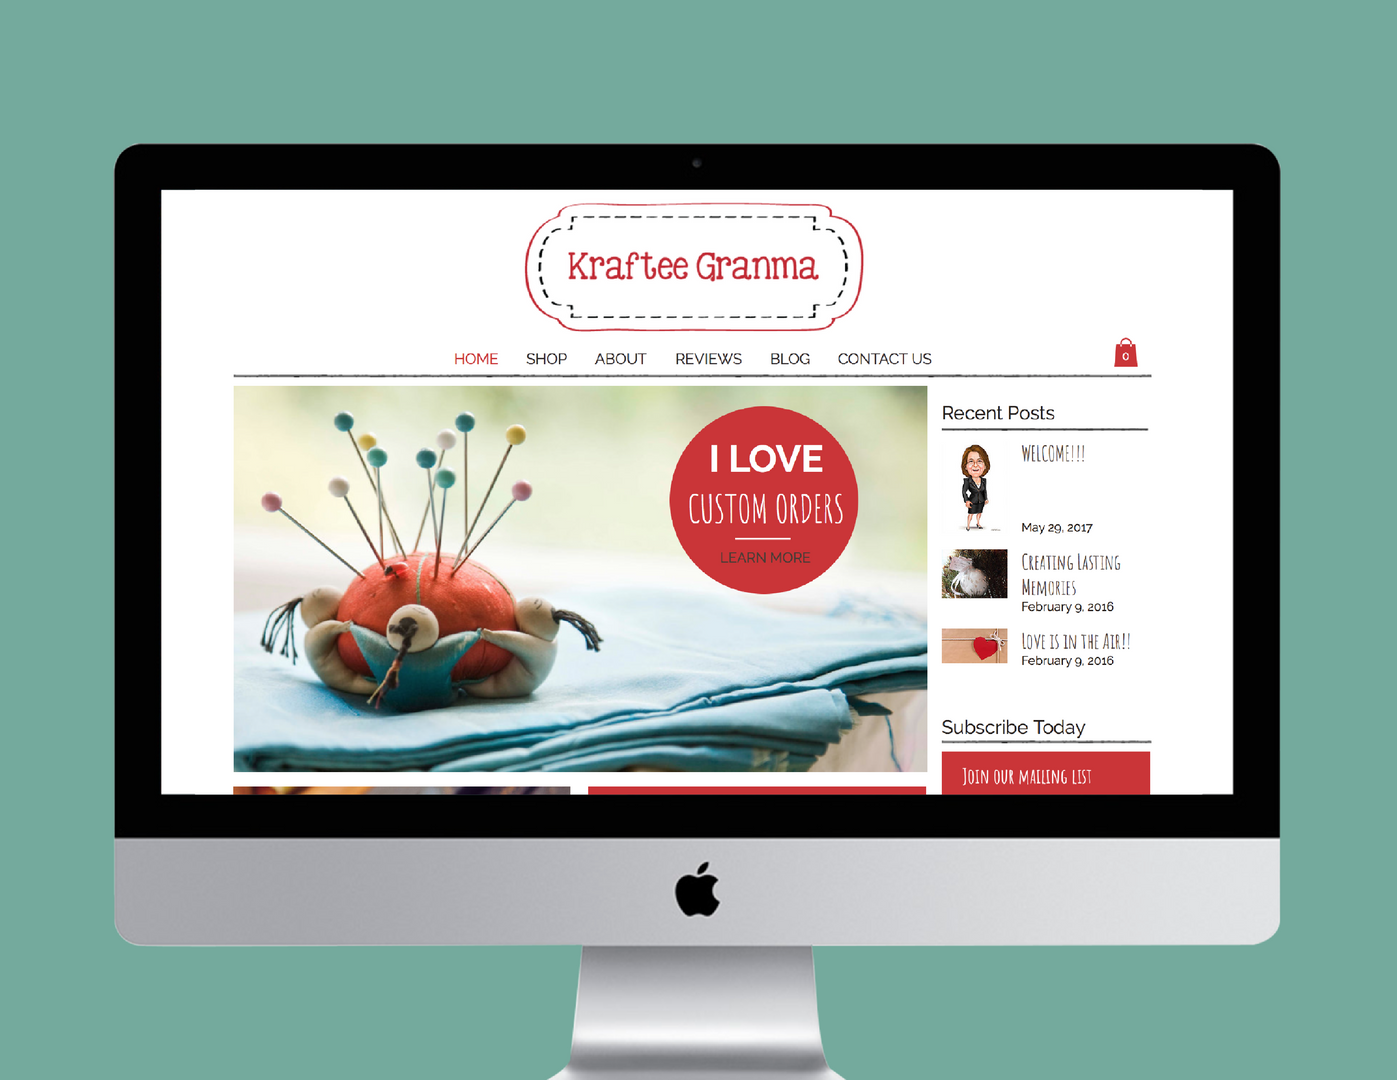 Kraftee Granma E-Commerce Website